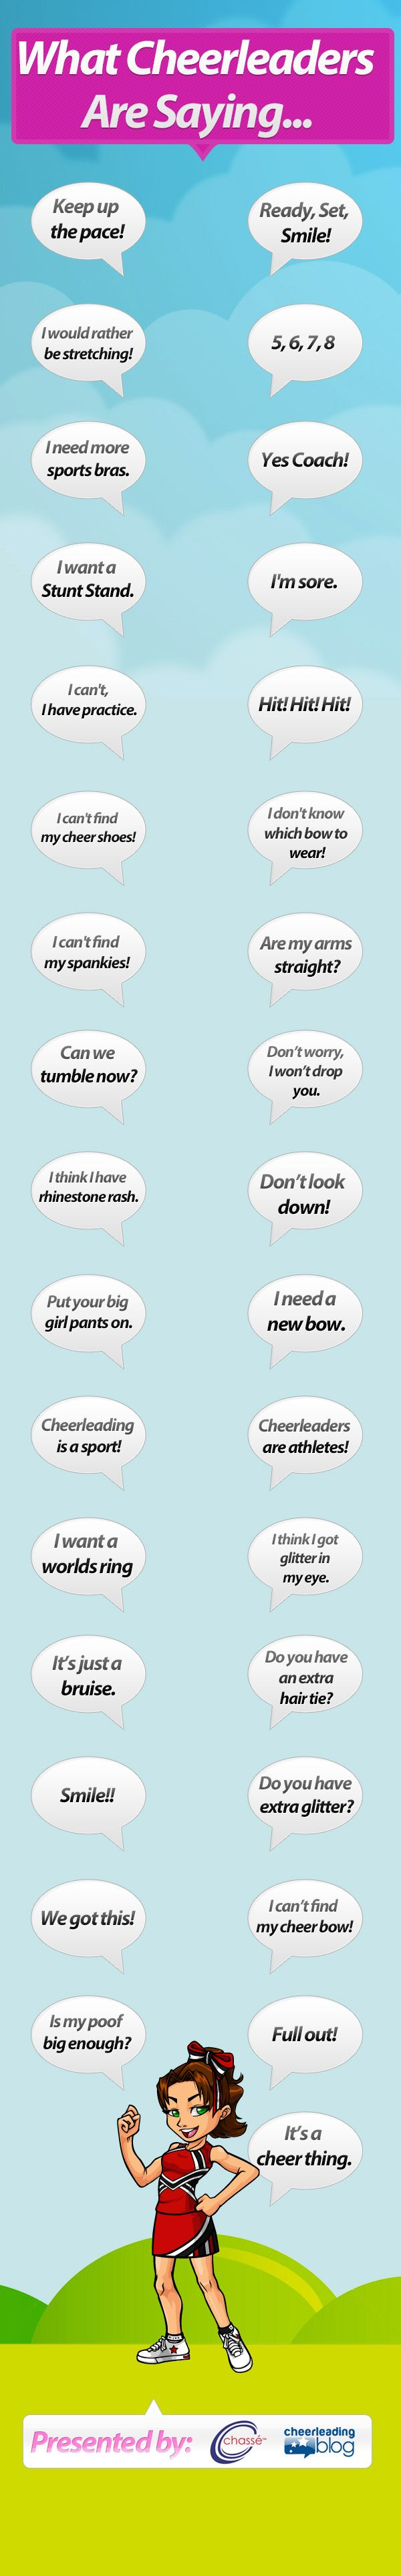 "The ""yes coach; I can't find my  cheer shoes or spankies; Which bow do I wear"" sayings are legit"